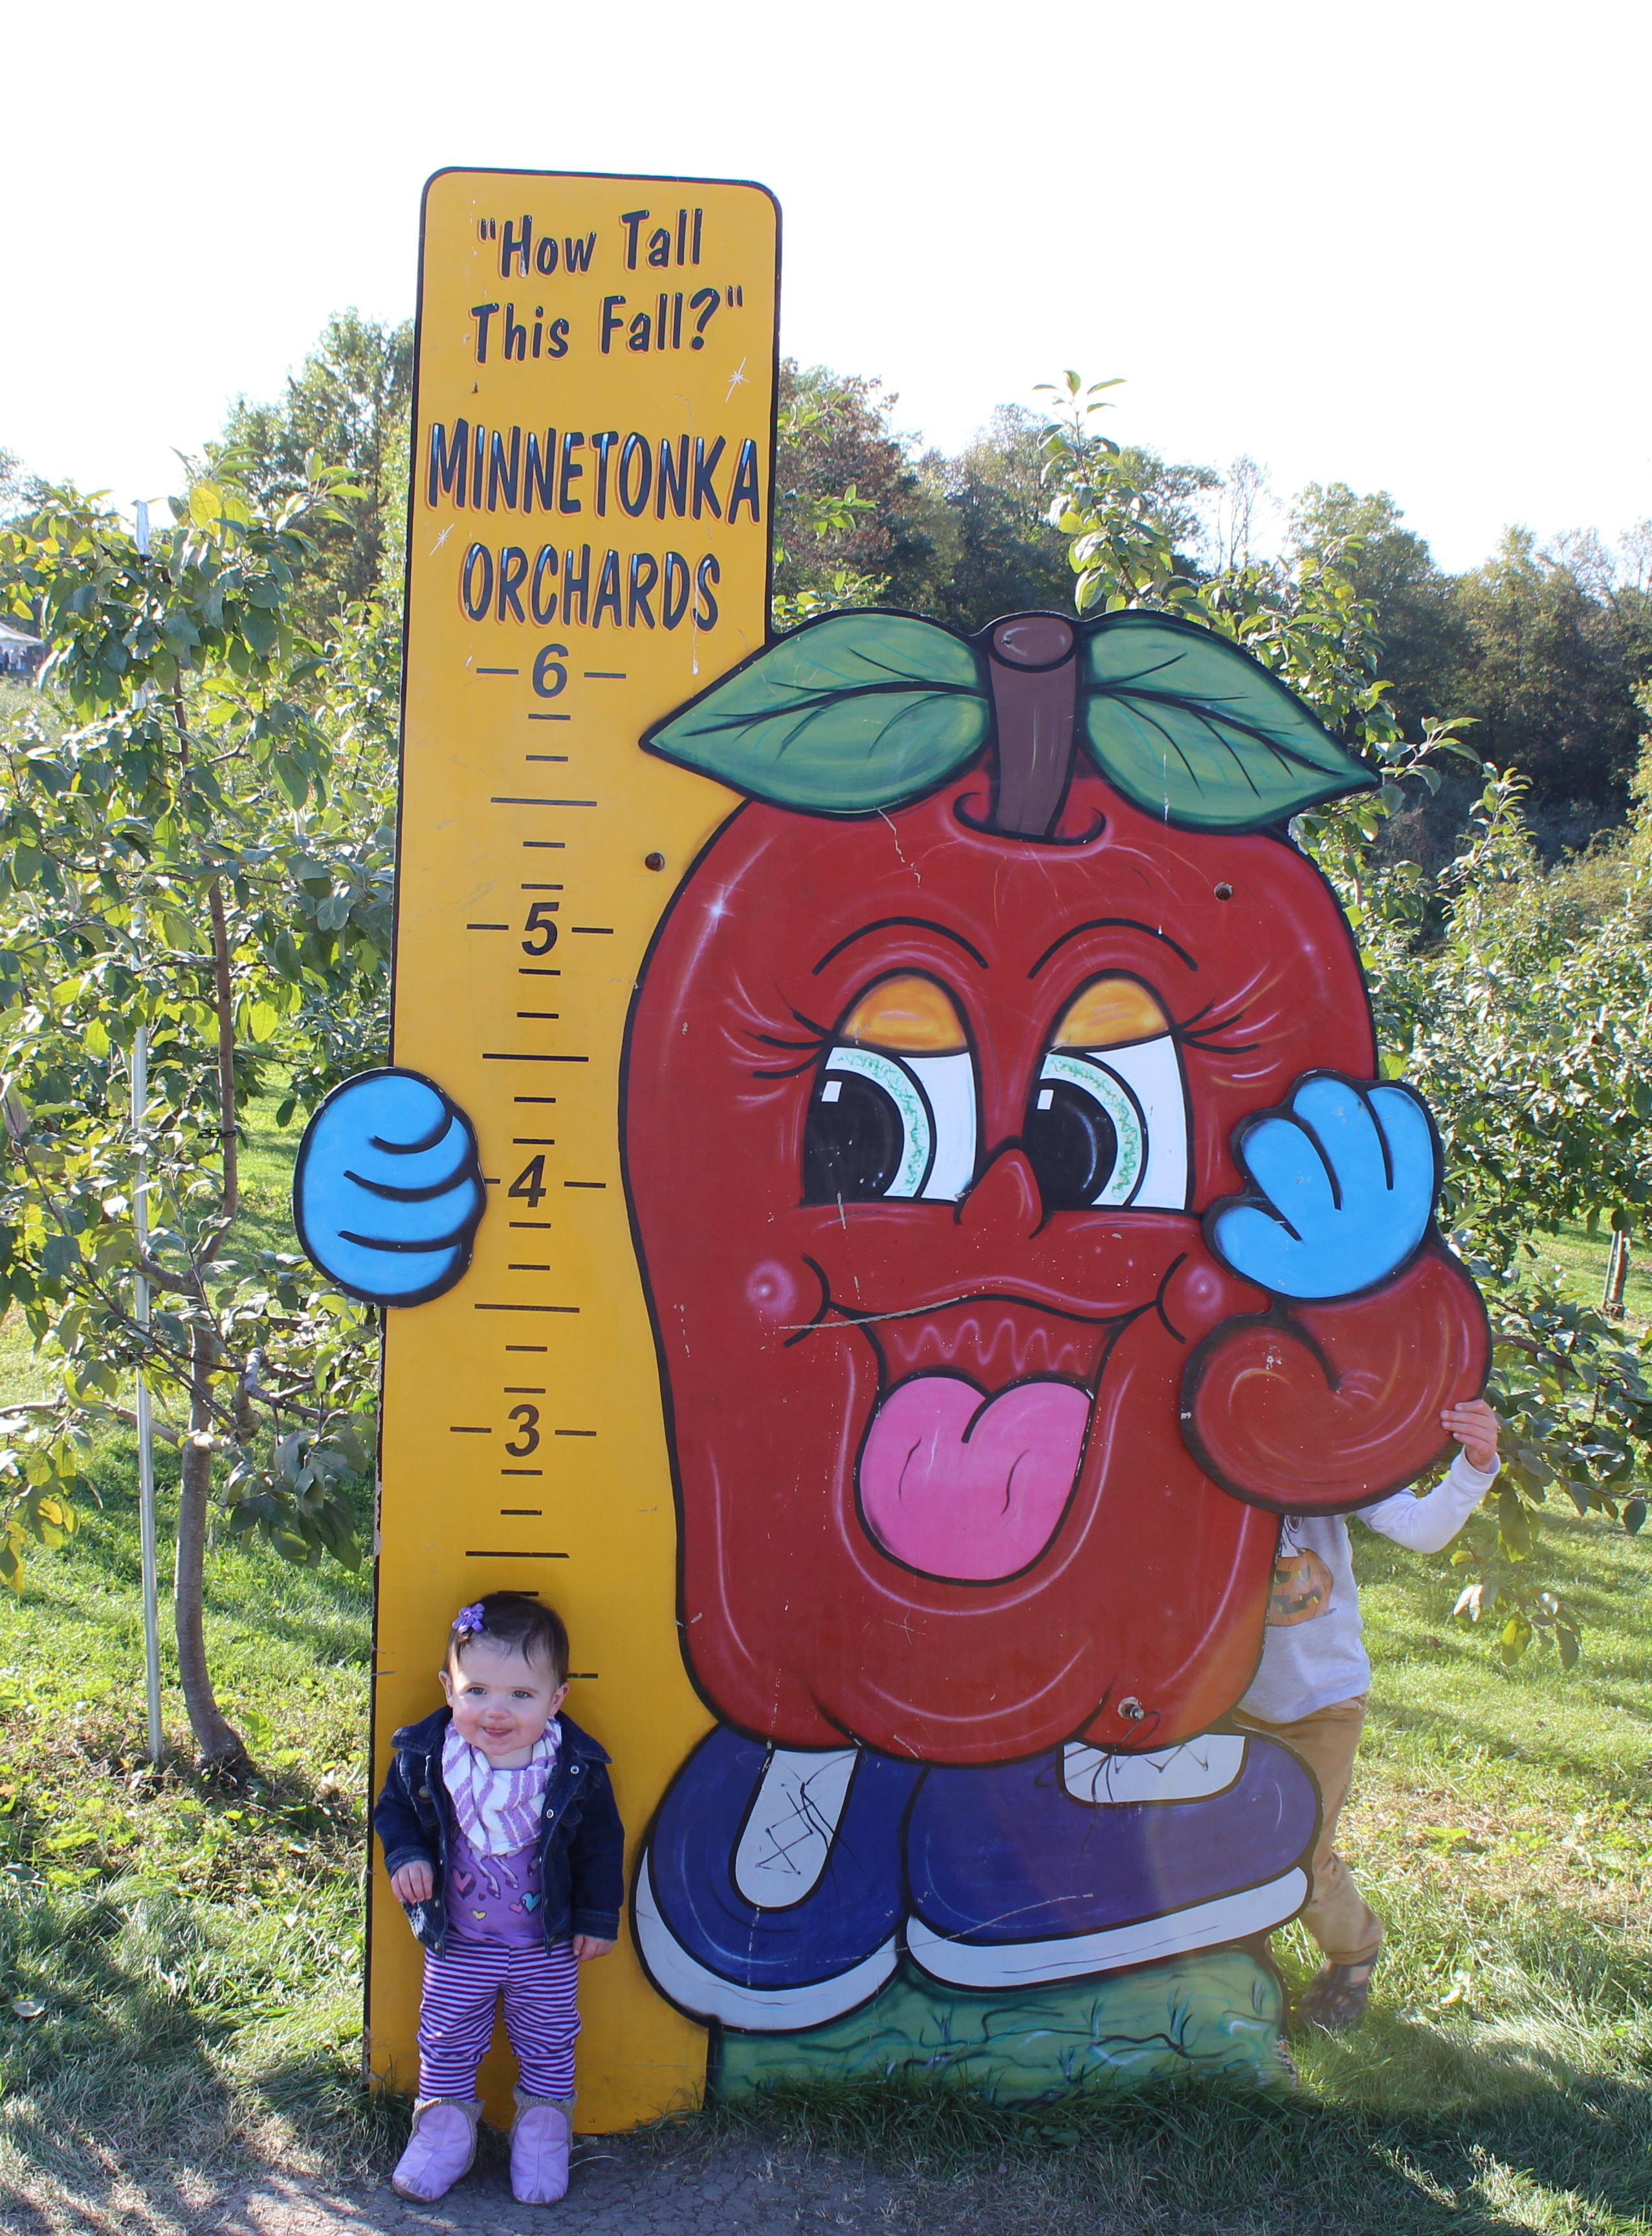 Gretchen at the Minnetonka Apple Orchard